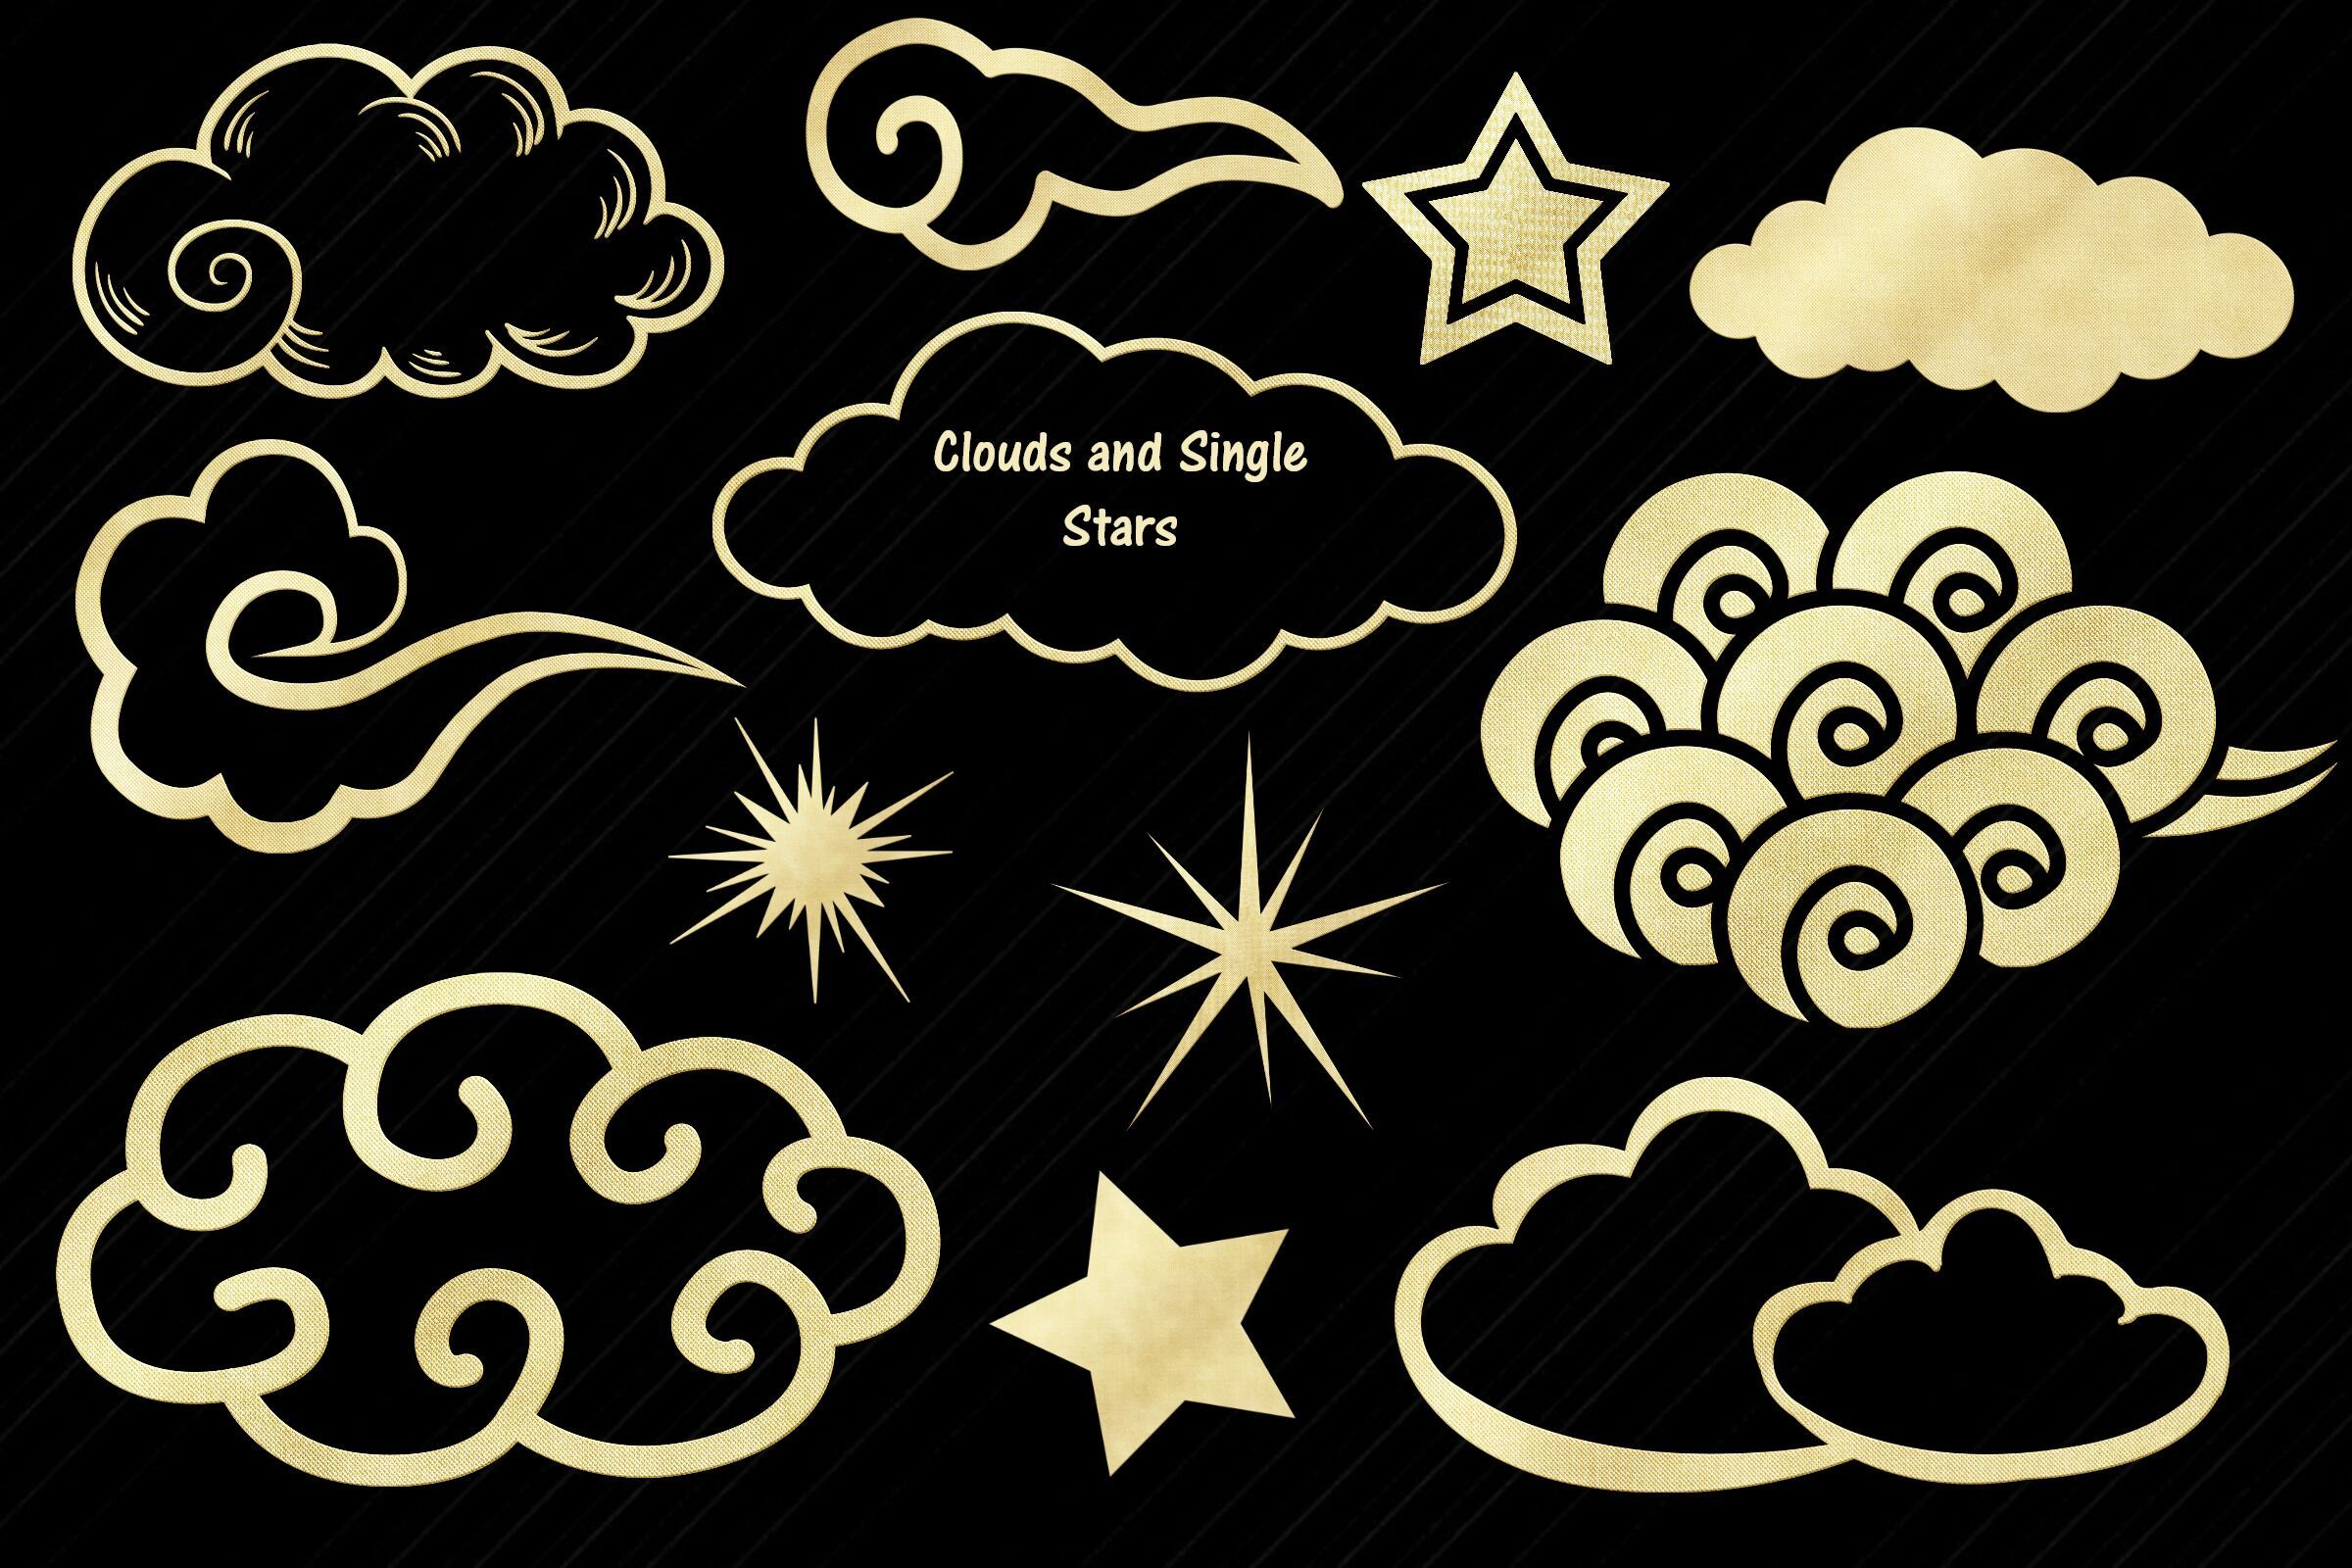 Gold Foil Sky Elements Clip Art By Me and Ameli